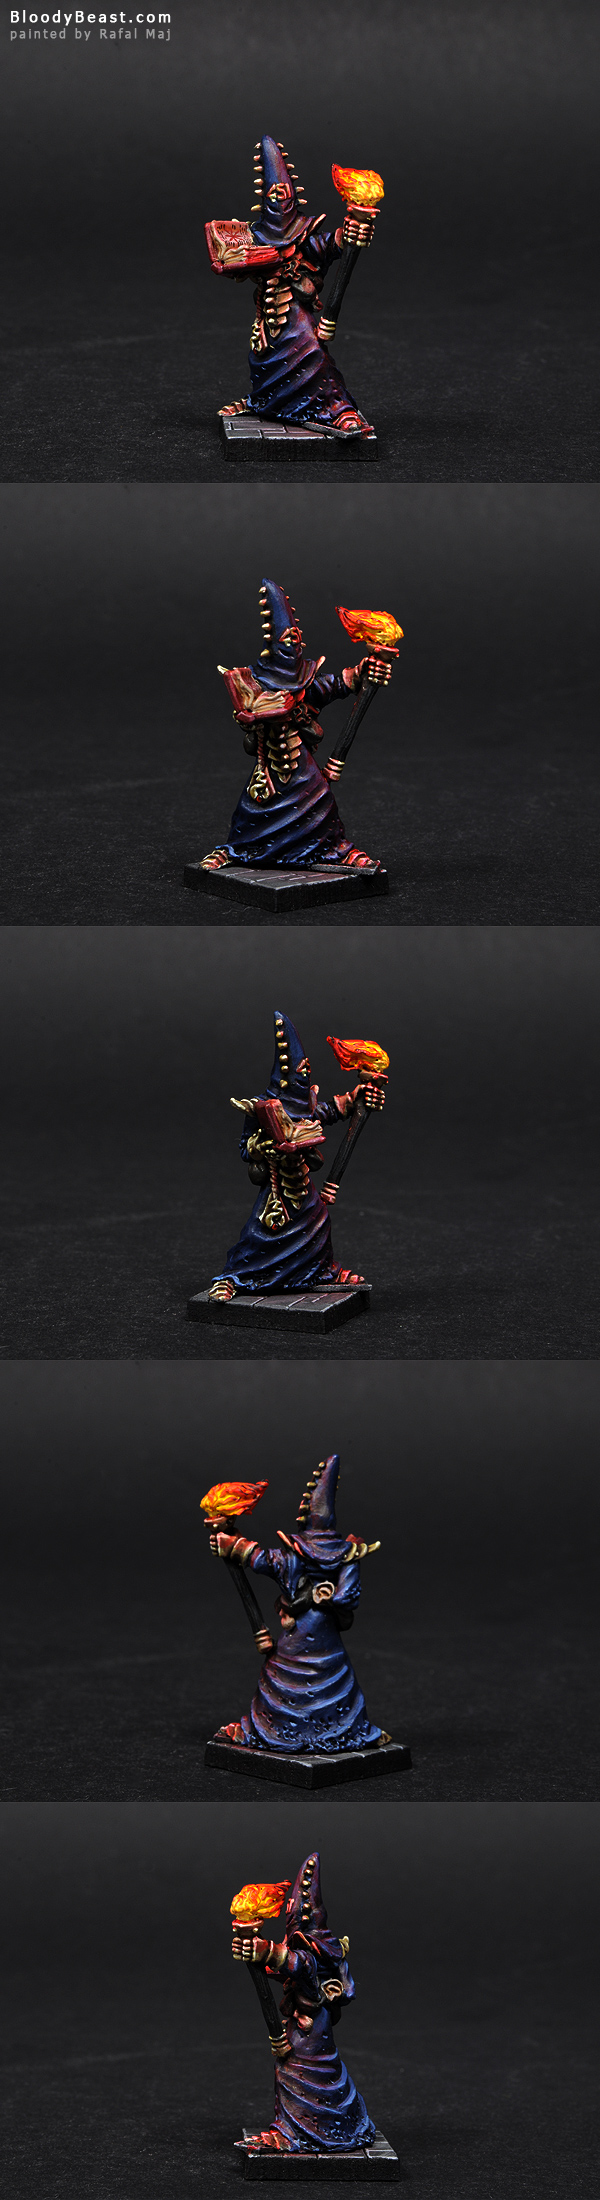 Chaos Sorcerer Shreve the Inquisitor painted by Rafal Maj (BloodyBeast.com)